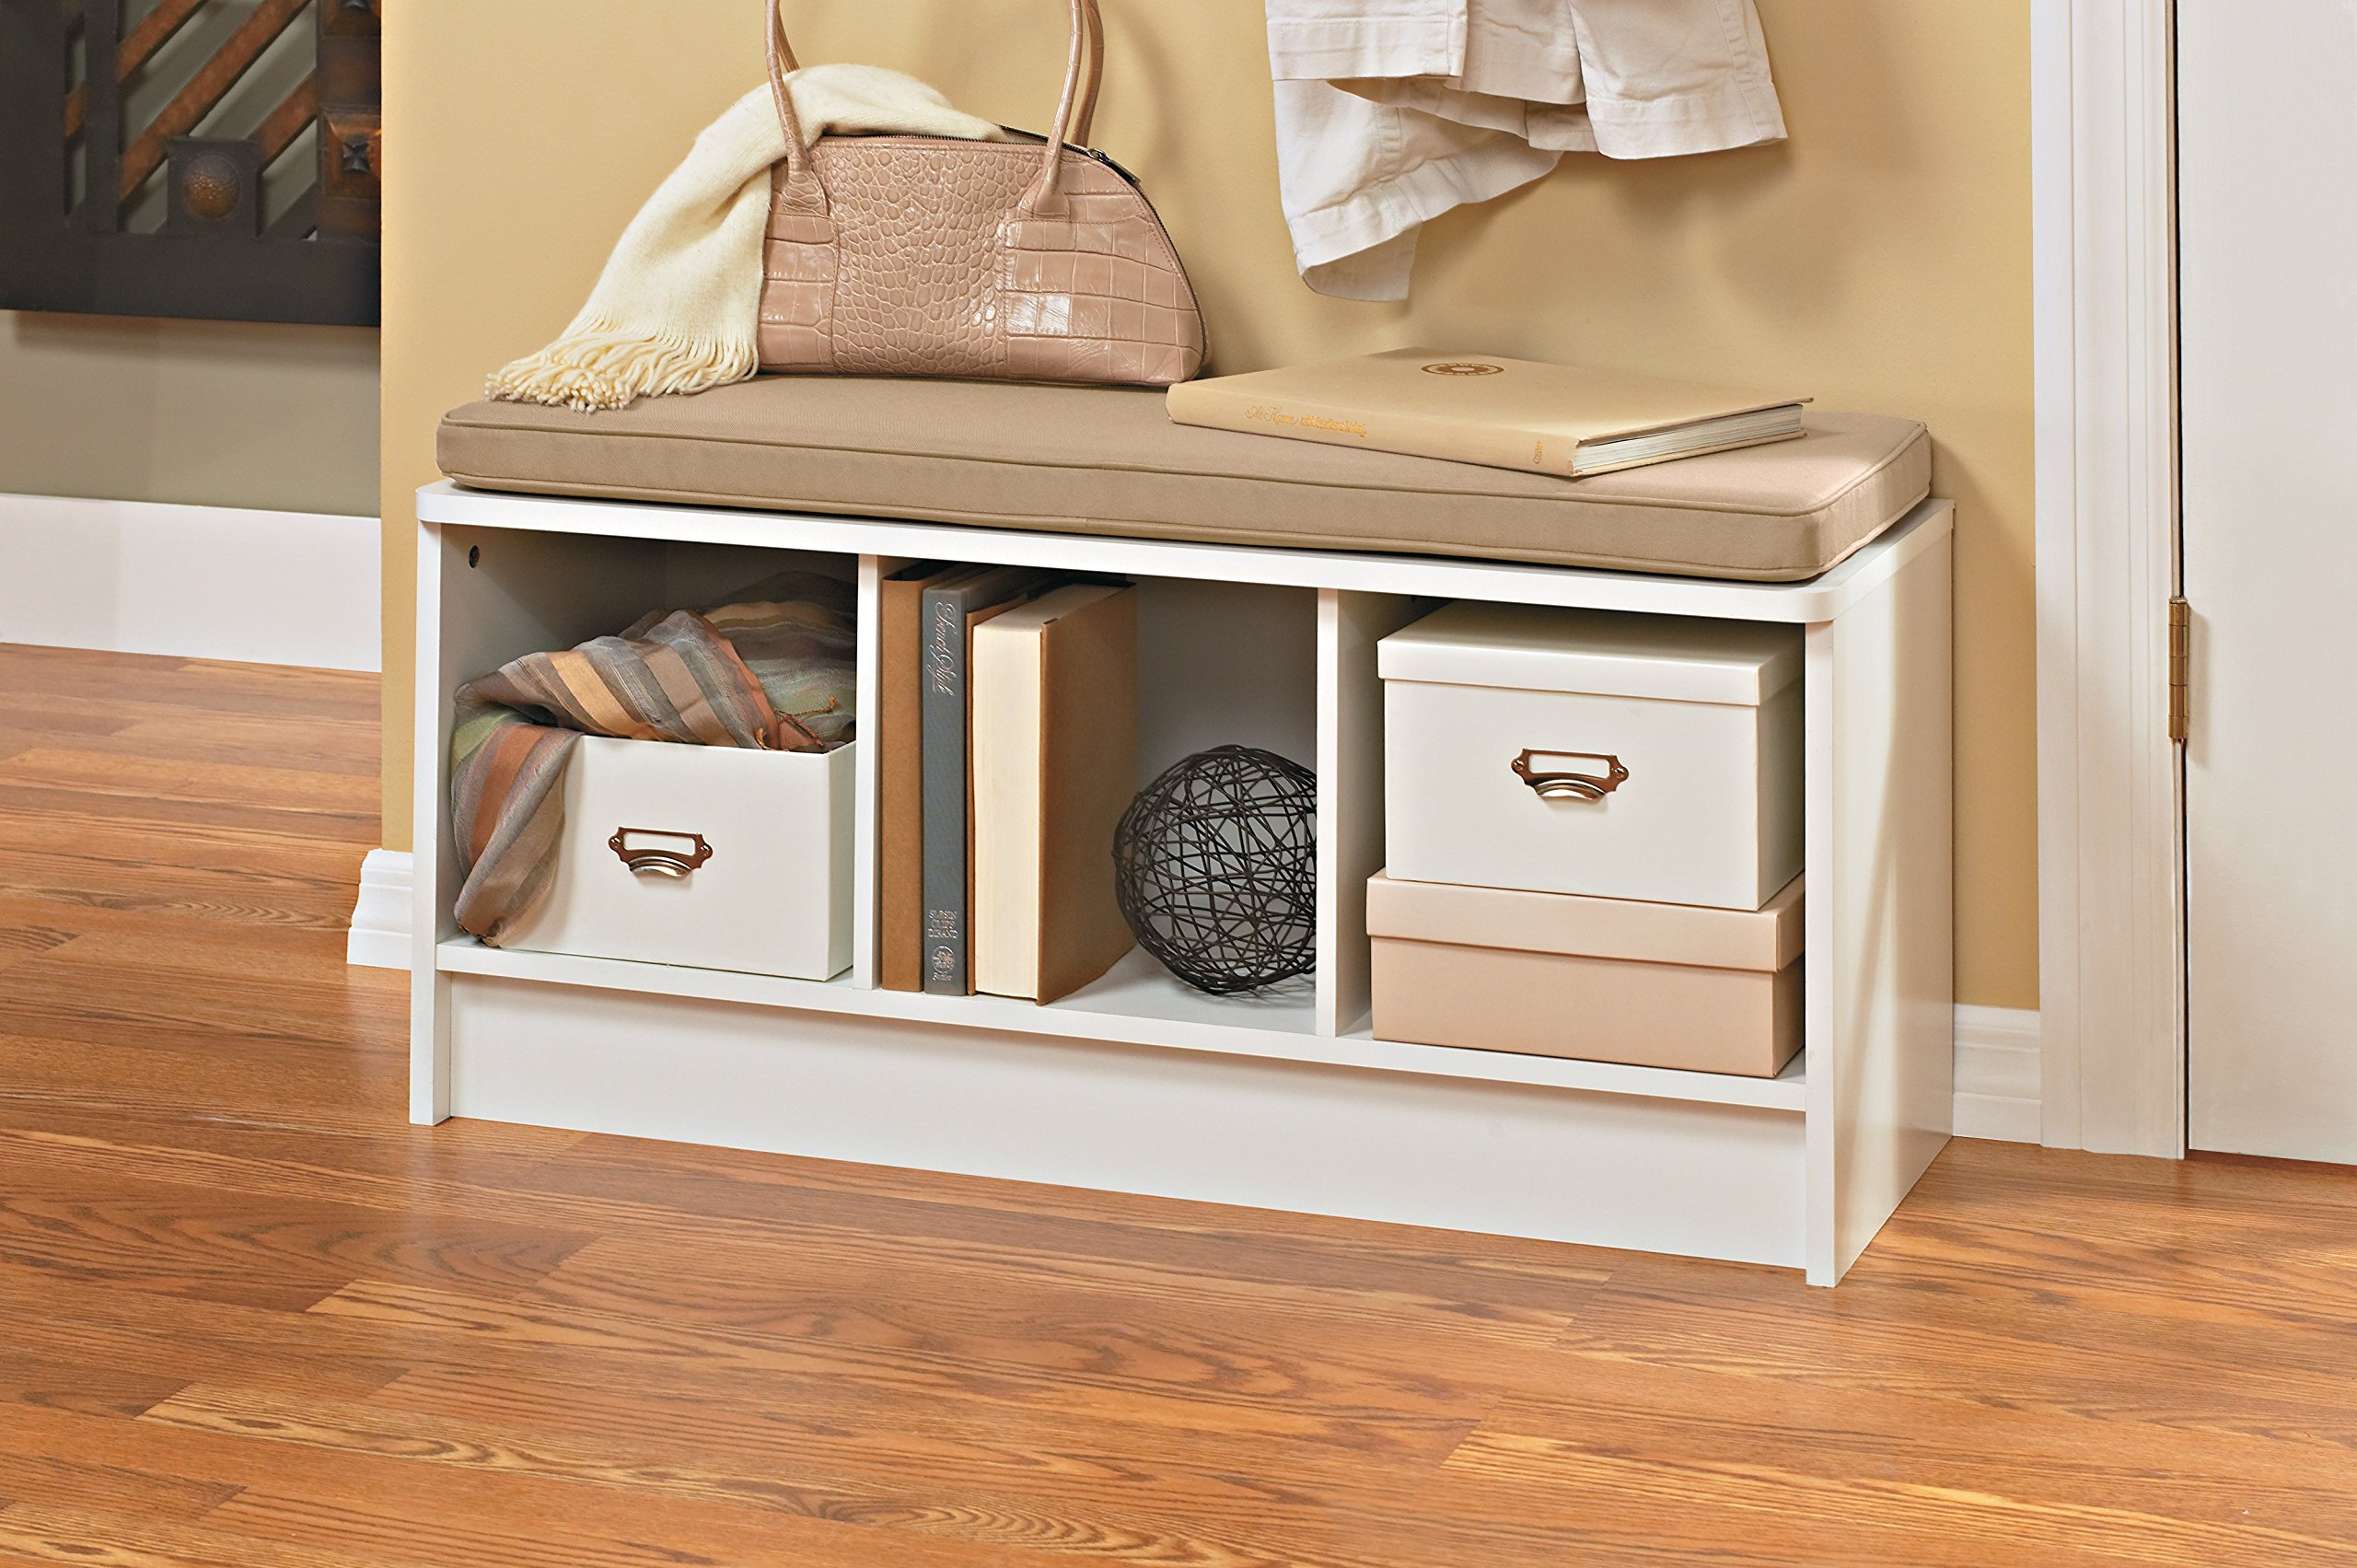 Closetmaid 1569 Cubeicals 3 Cube Storage Bench White Ebay